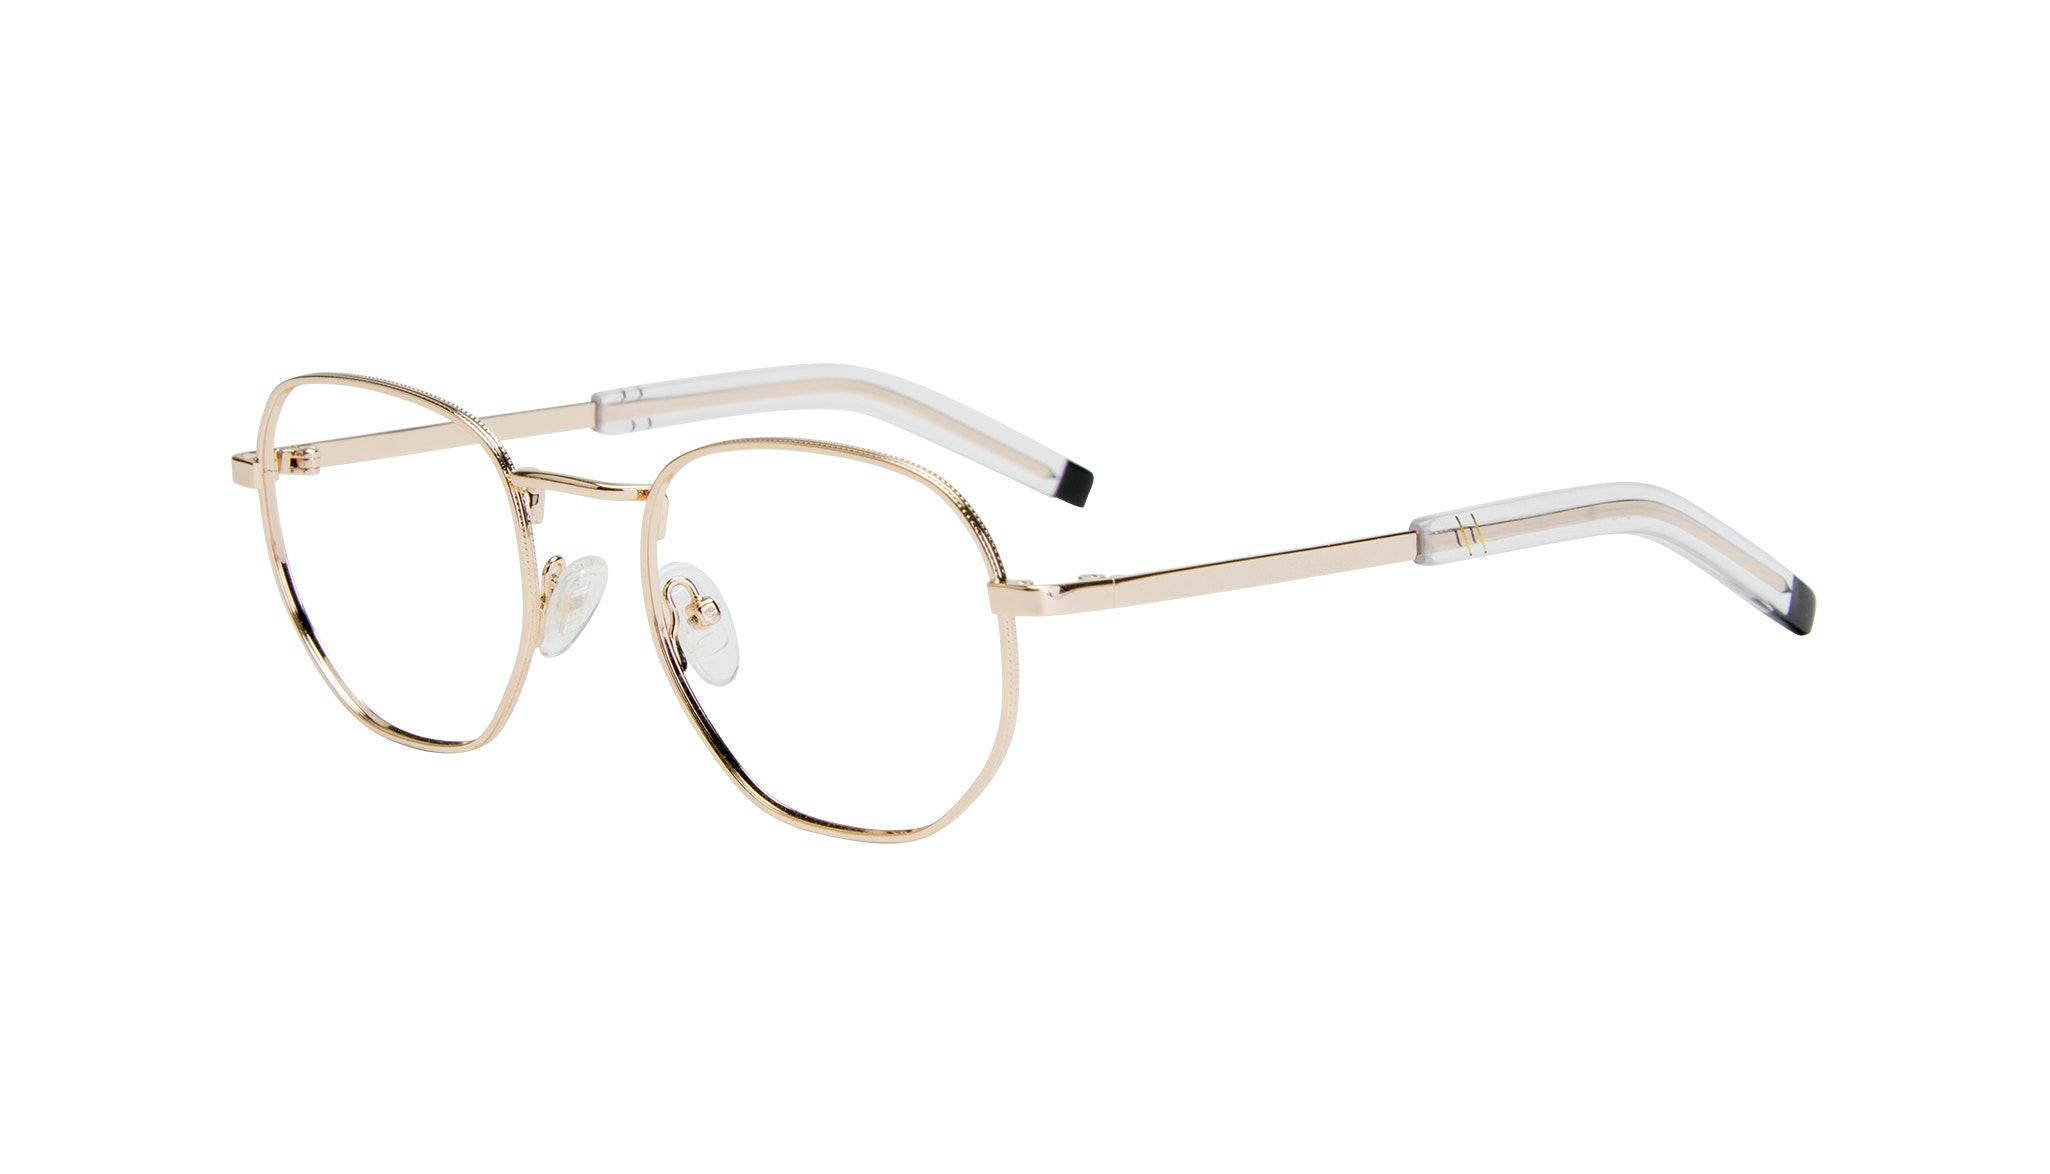 Affordable Fashion Glasses Round Eyeglasses Men Rise Gold Tilt